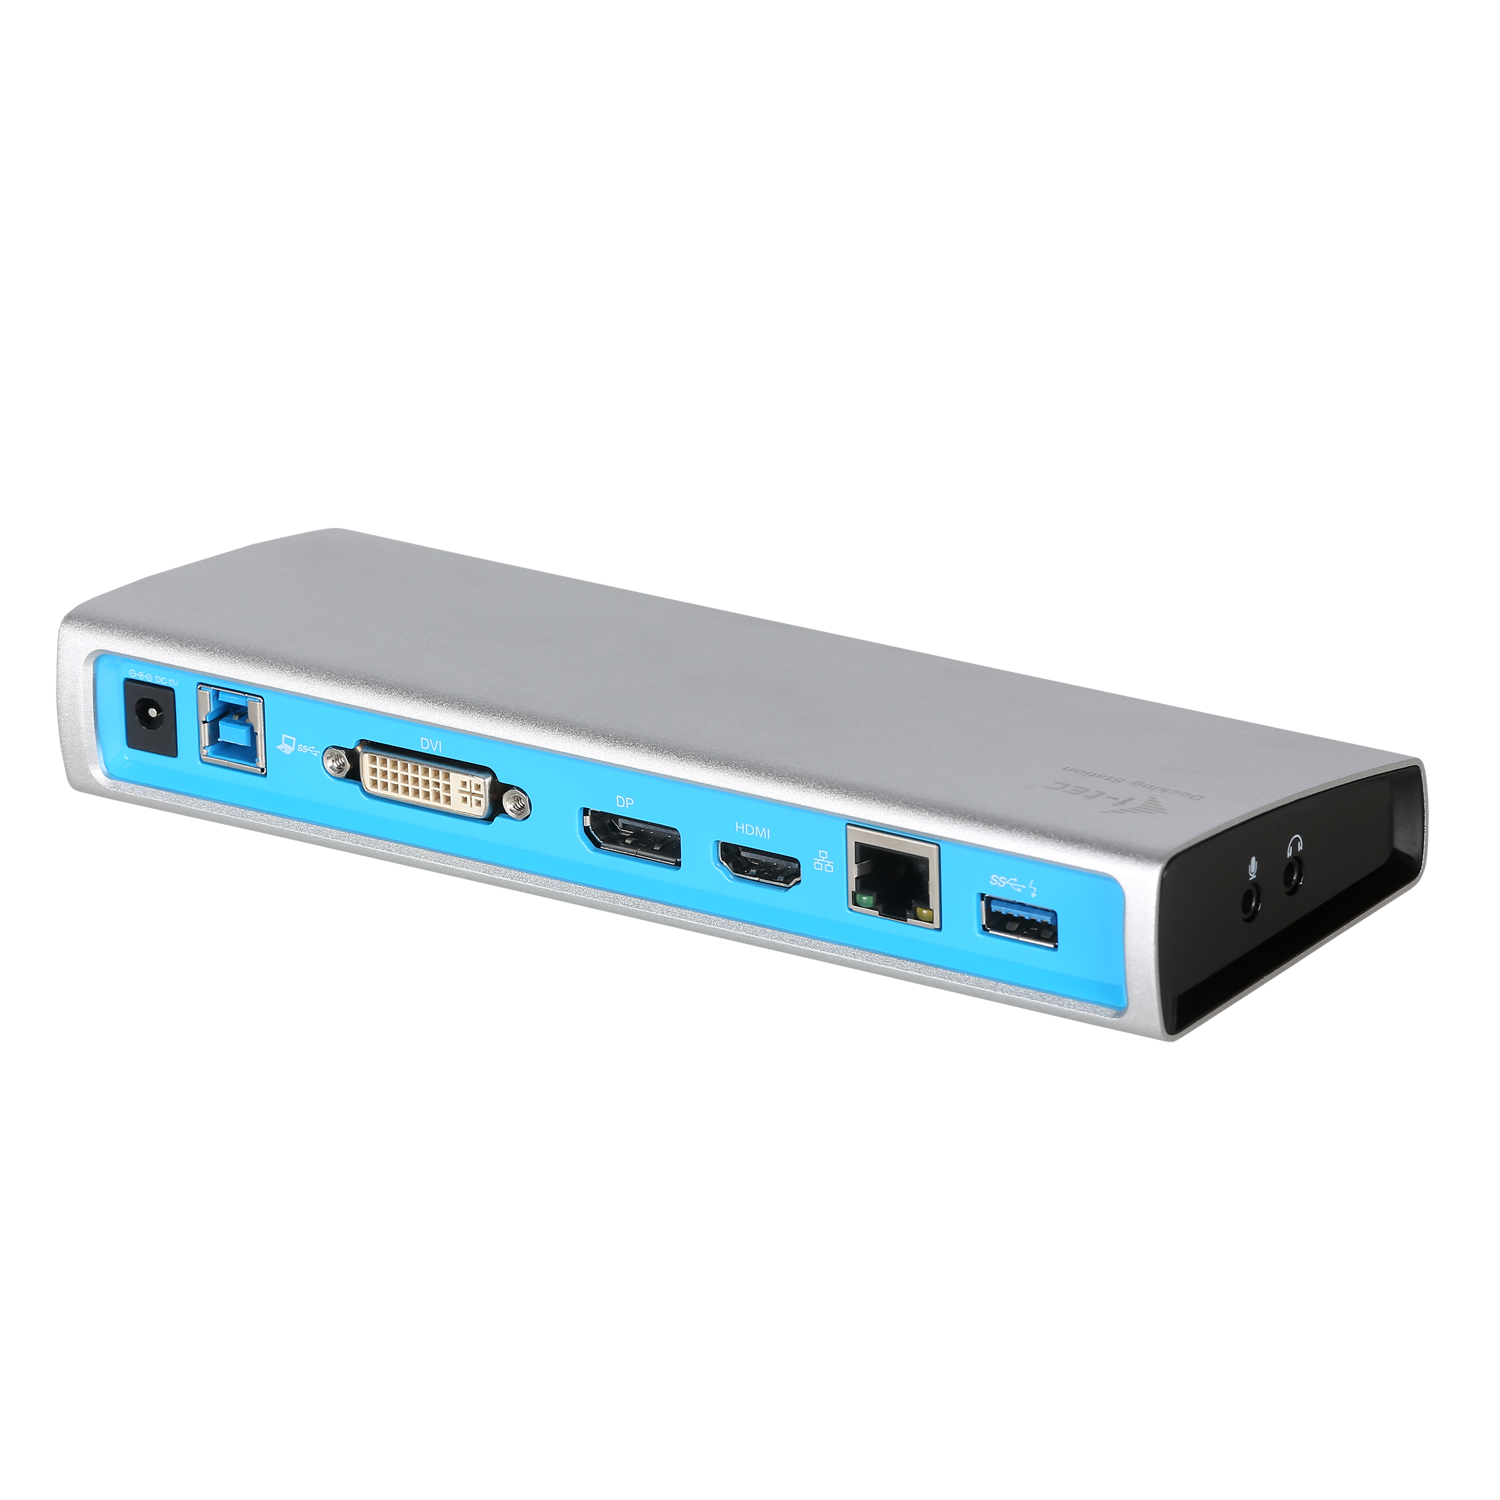 U3METALDOCK i-tec USB 3.0 METAL Docking Station DVI+HDMI/DP